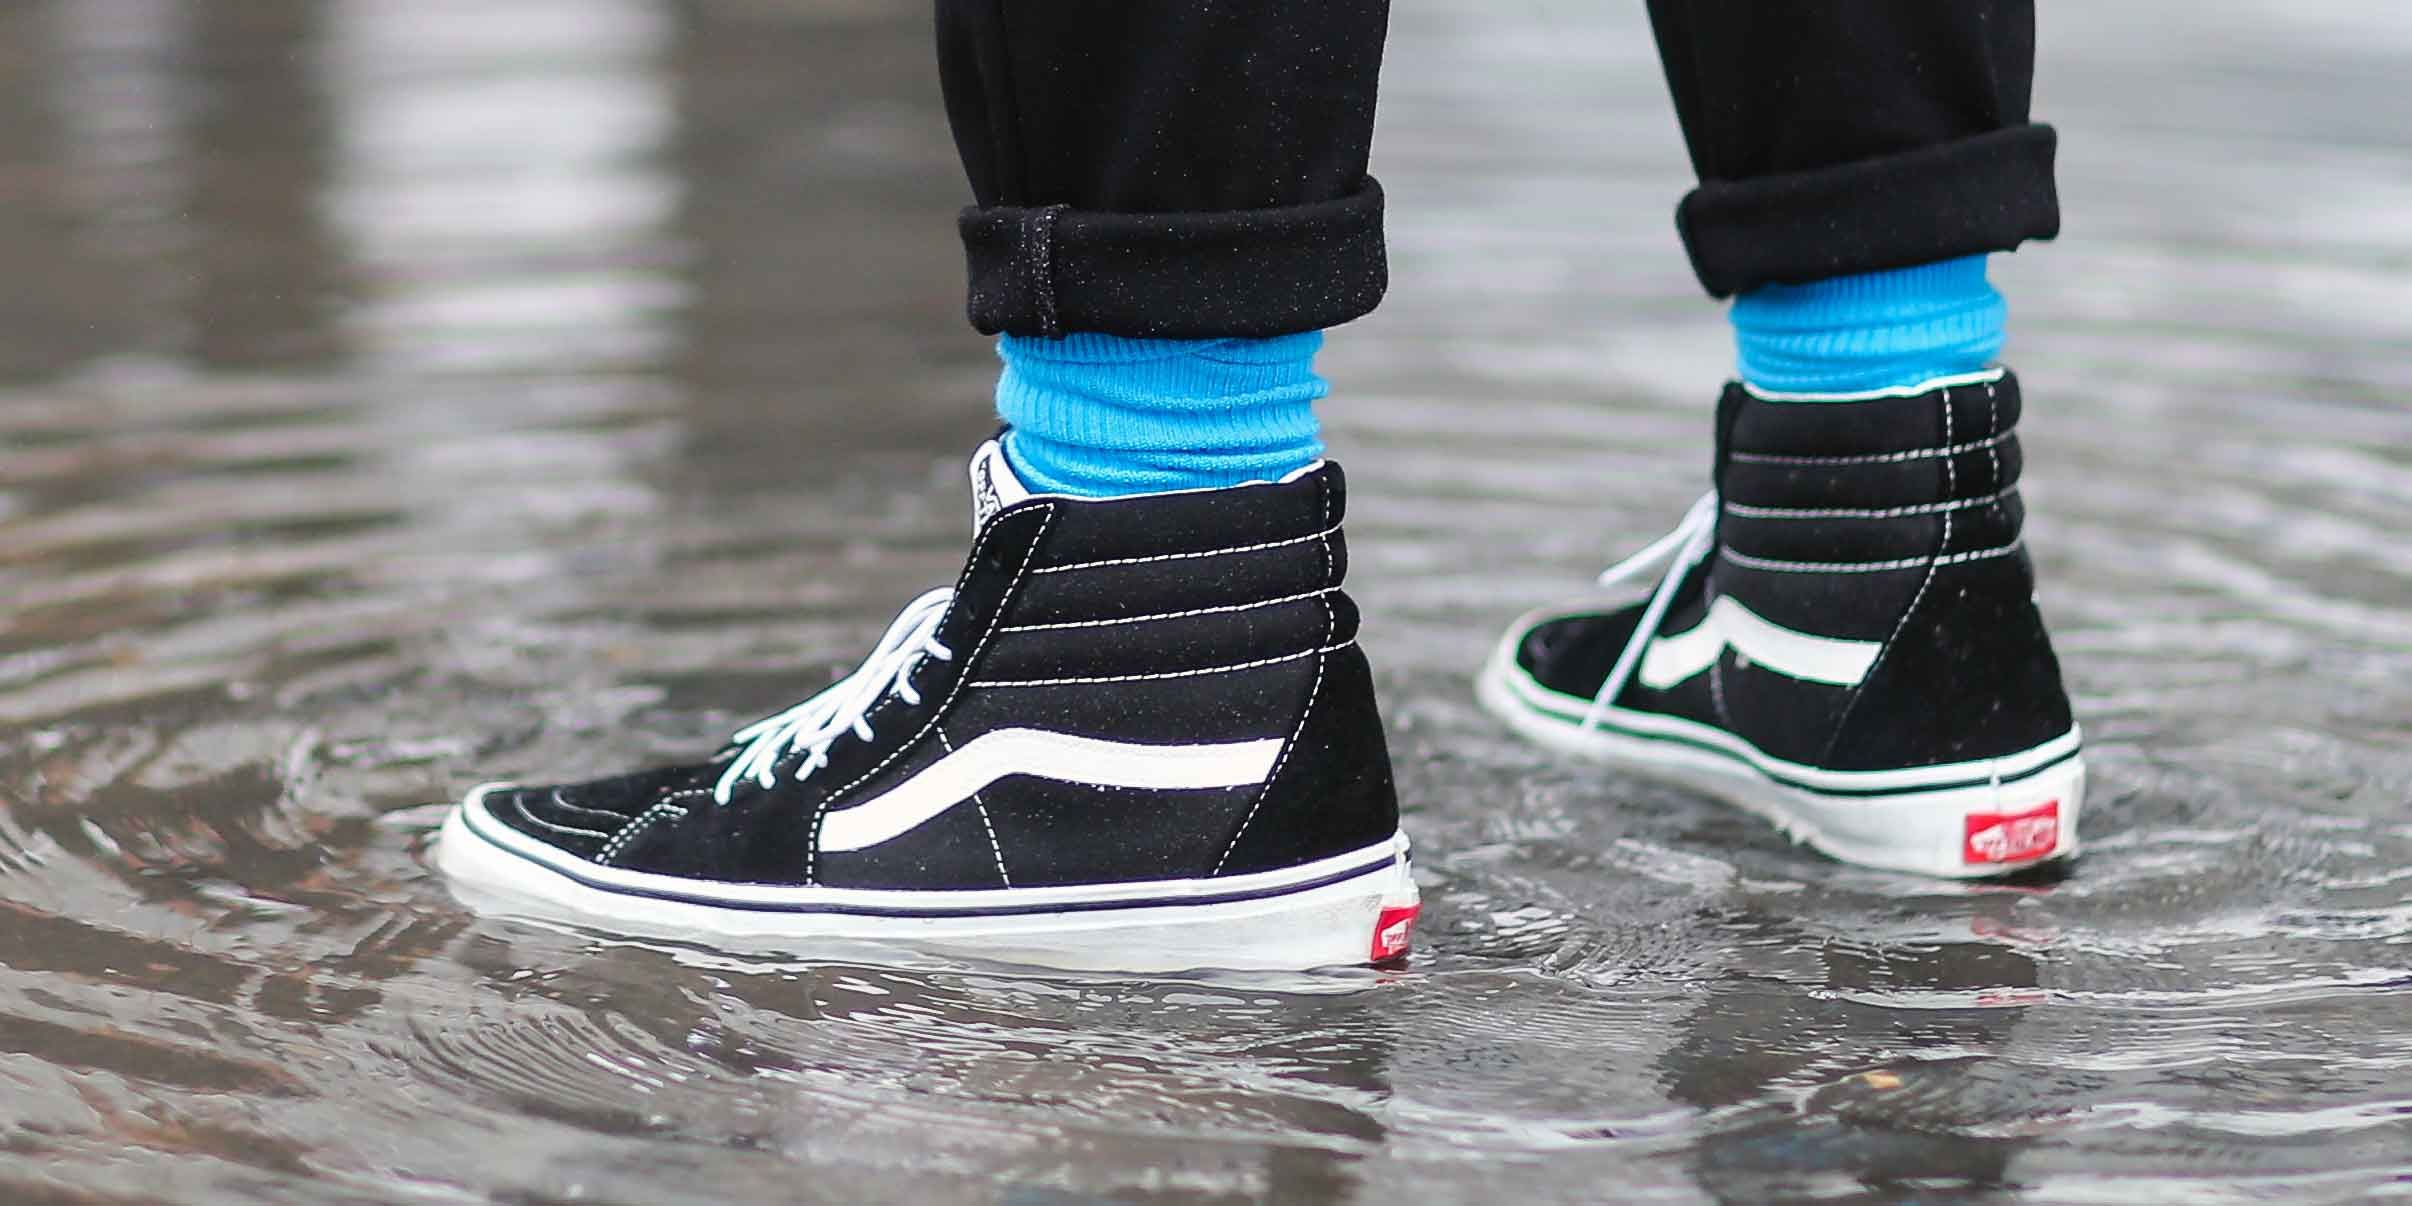 5 Best Waterproof Shoes for Fall 2015   Top Rain Boots for Fall image